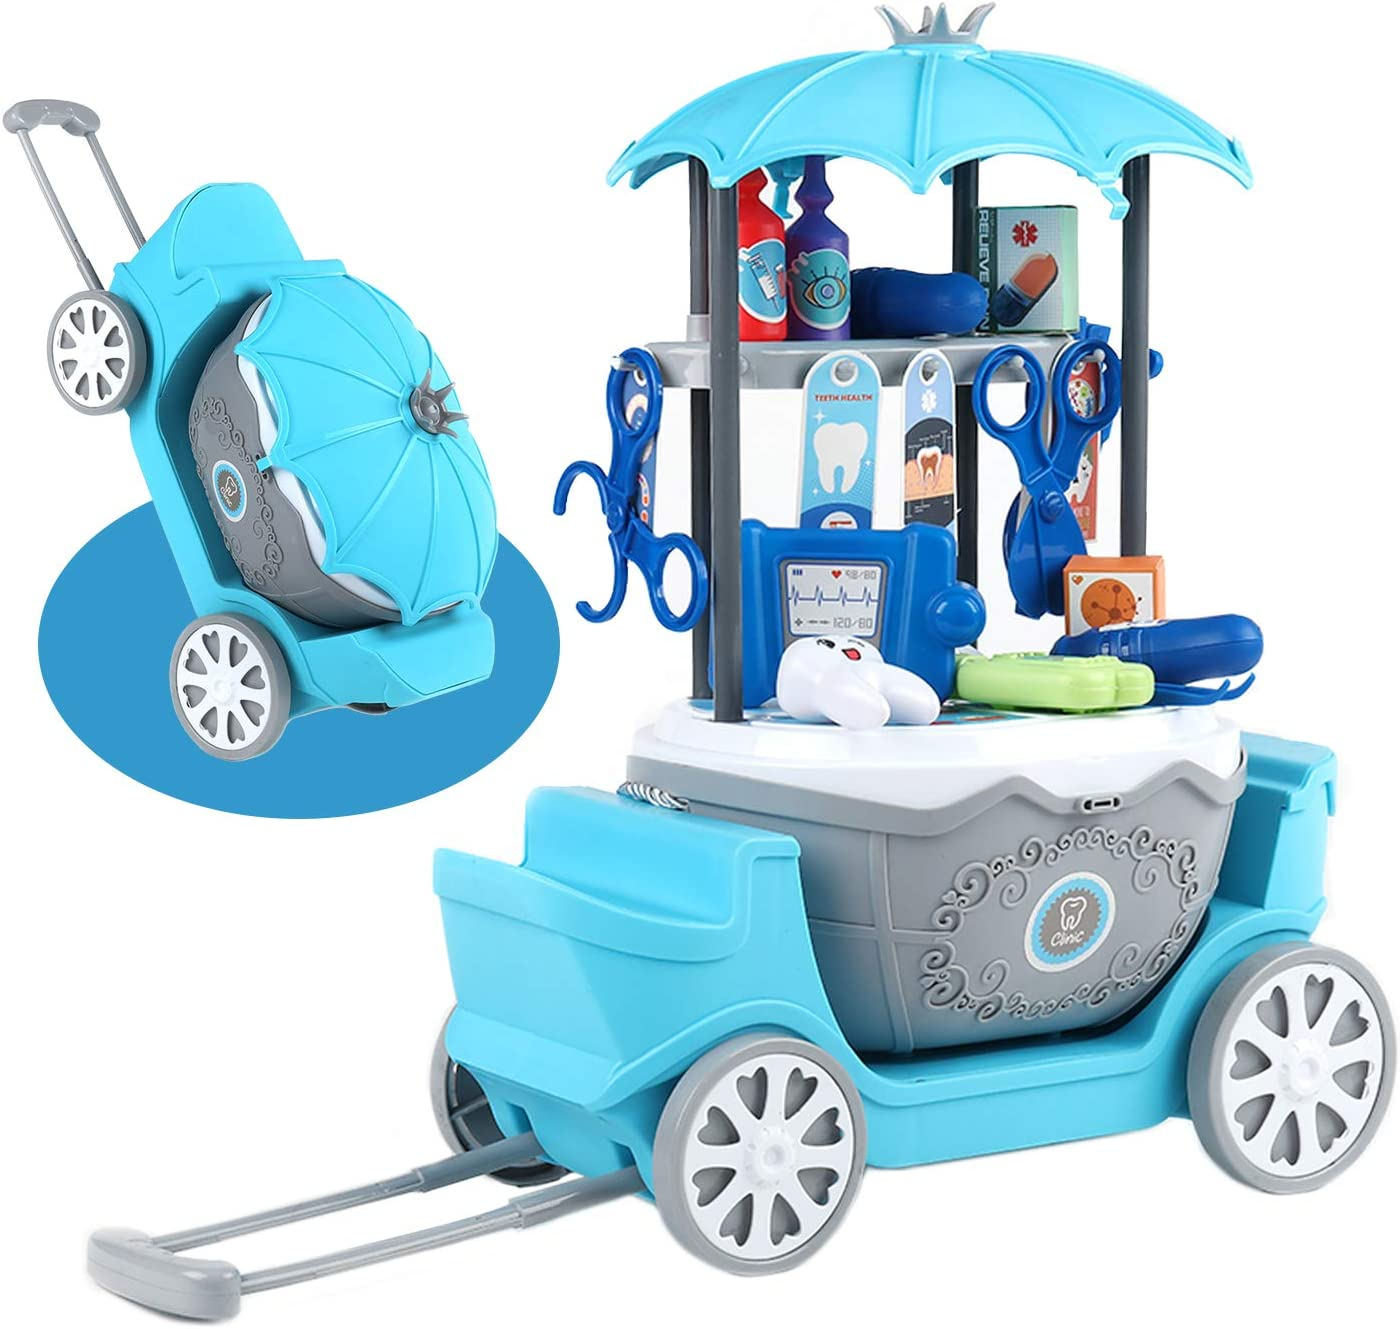 Kids Doctor Playset, 40Pcs Doctor Pretend Play Equipment, Dentist Toy Kit with Carrying Case and Cart, Doctor Role Play Educational Toy for Toddler Boys Girls